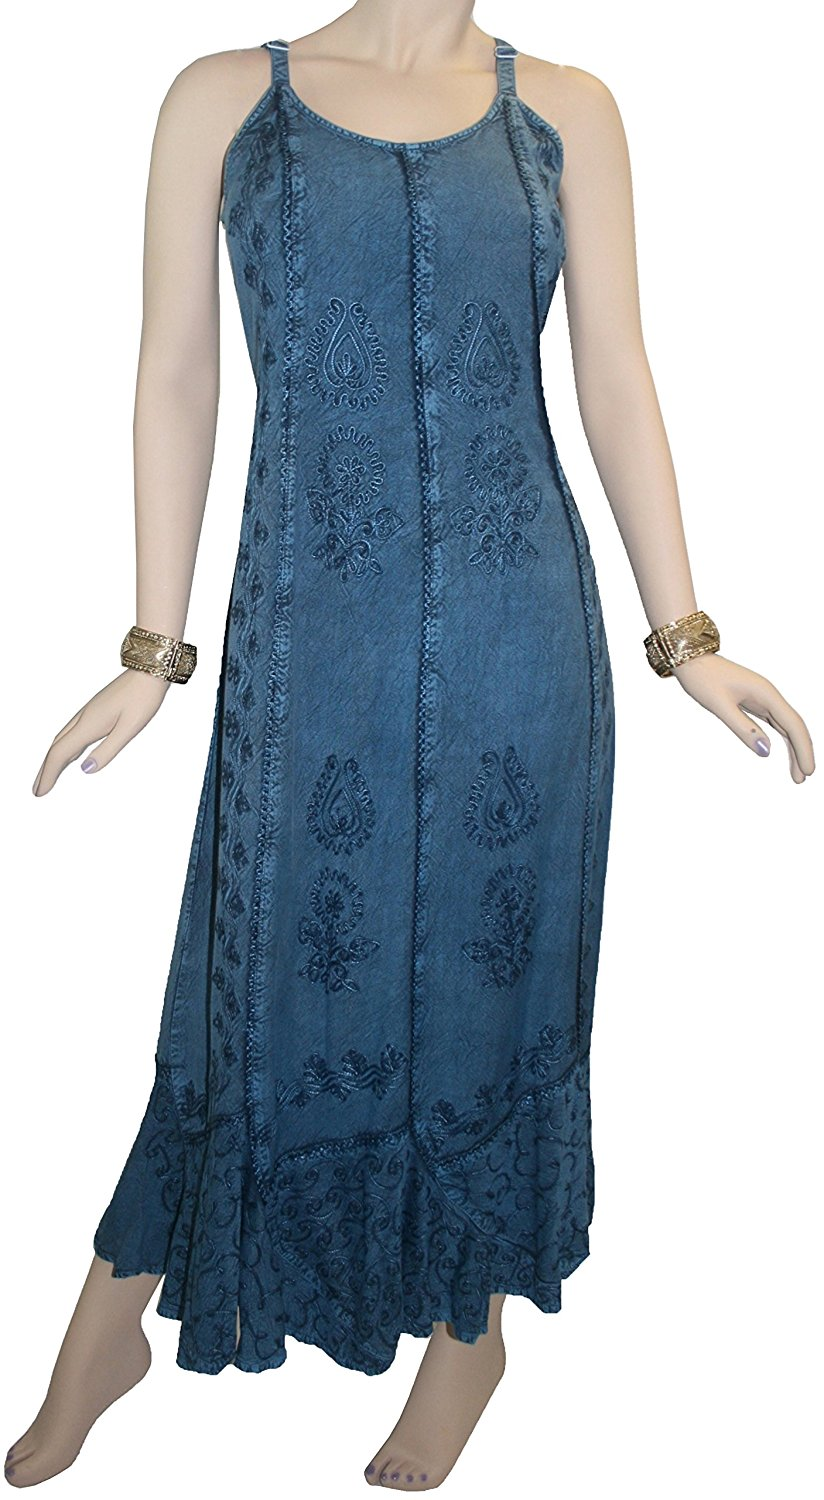 1005 DR Embroidered Scalloped Hem Gypsy Spaghetti Strap Dress - Agan Traders